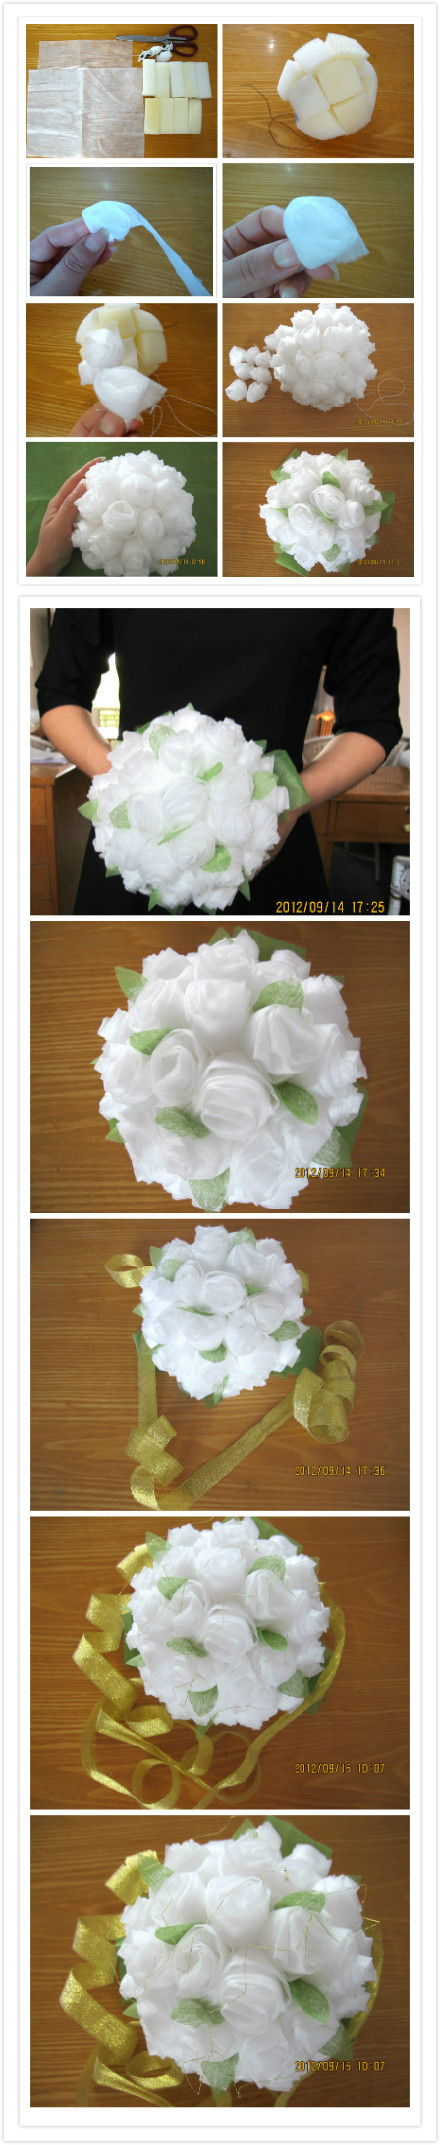 How to make Baby Tissue Paper Flower Bouquet step by step DIY ...